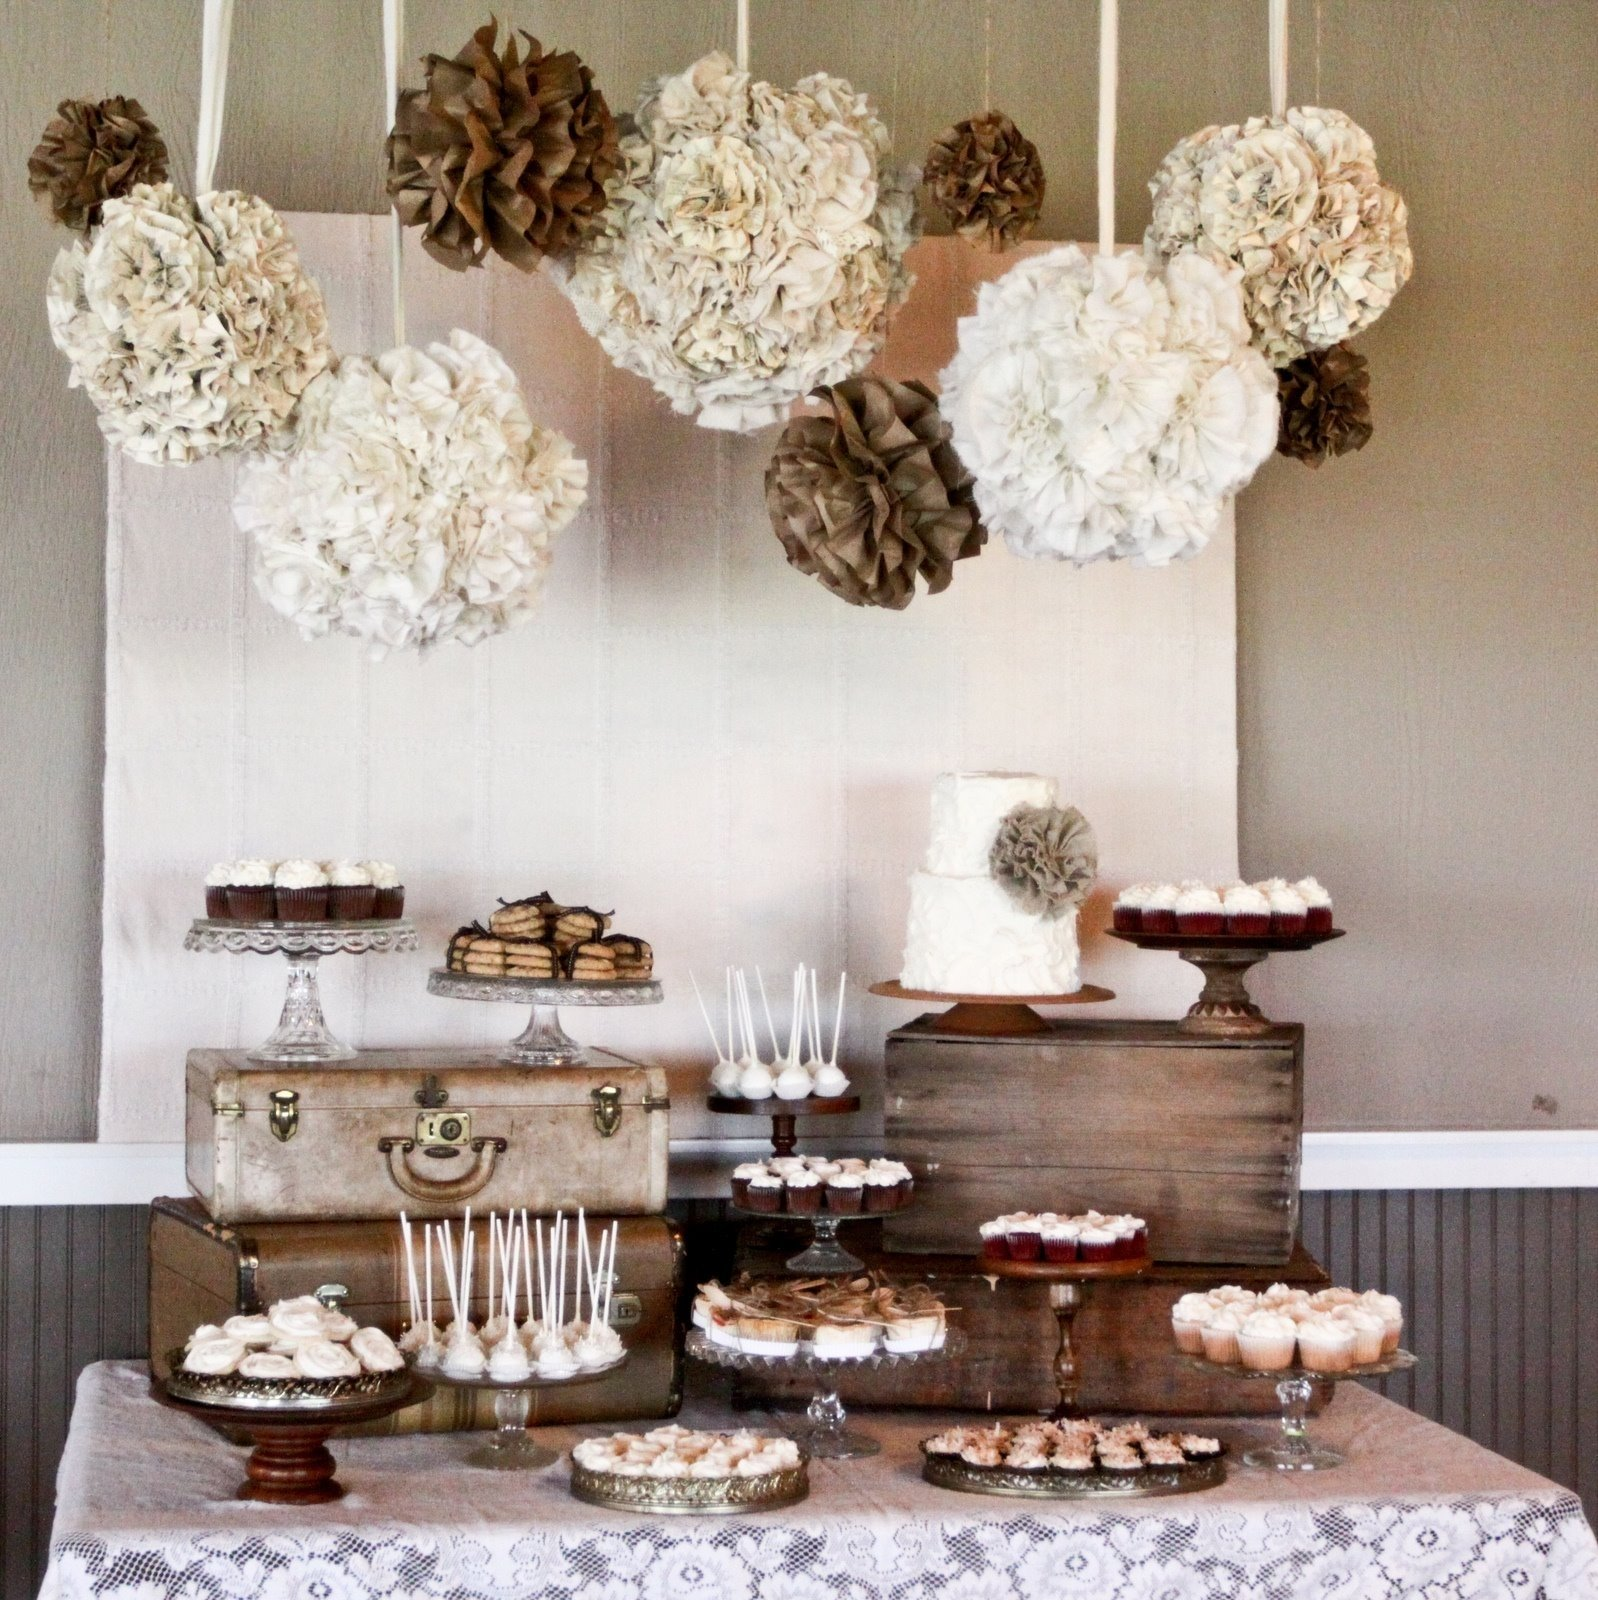 10 Cute Pinterest Decorating Ideas For Home pinterest home decorating ideas best pinterest home decorating 1 2020